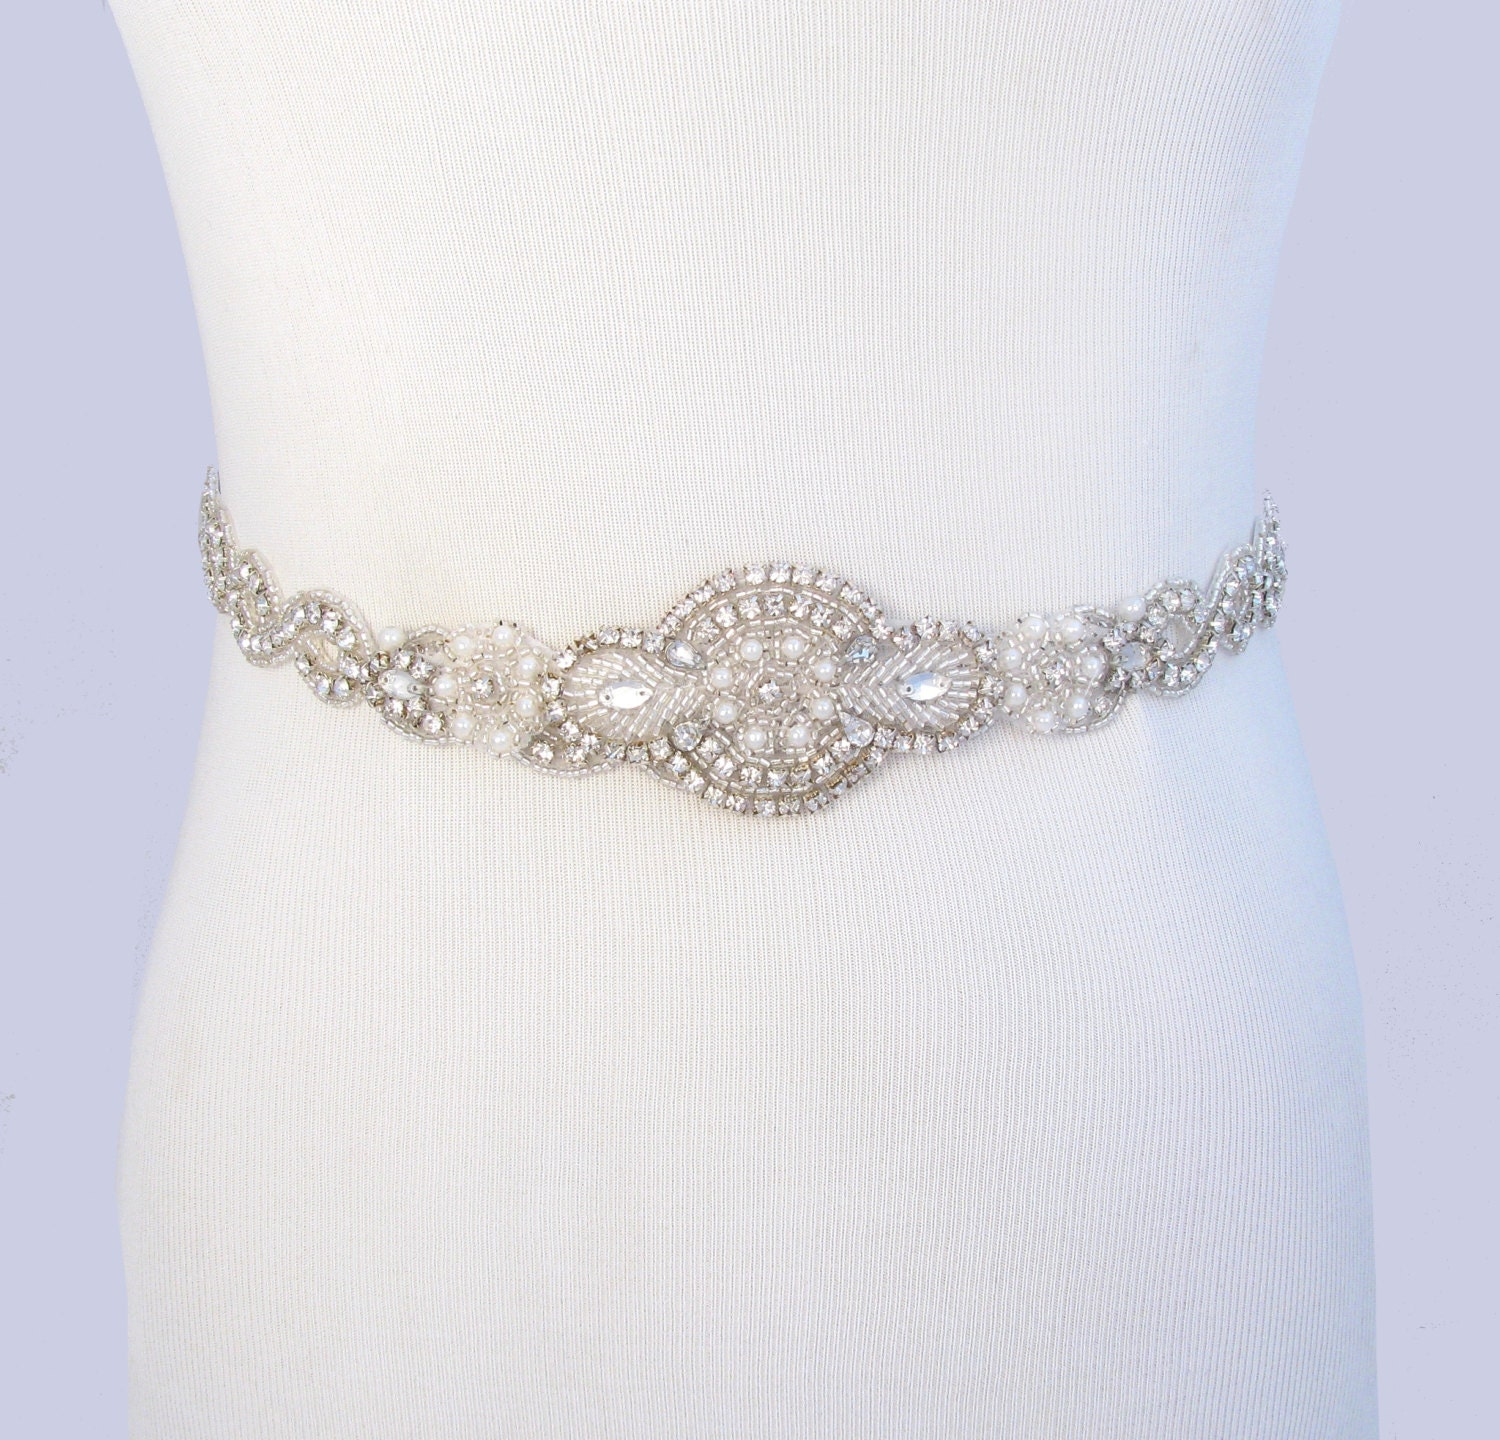 Infinity wedding dress sash satin ribbon bridal belt silver for Satin belt for wedding dress